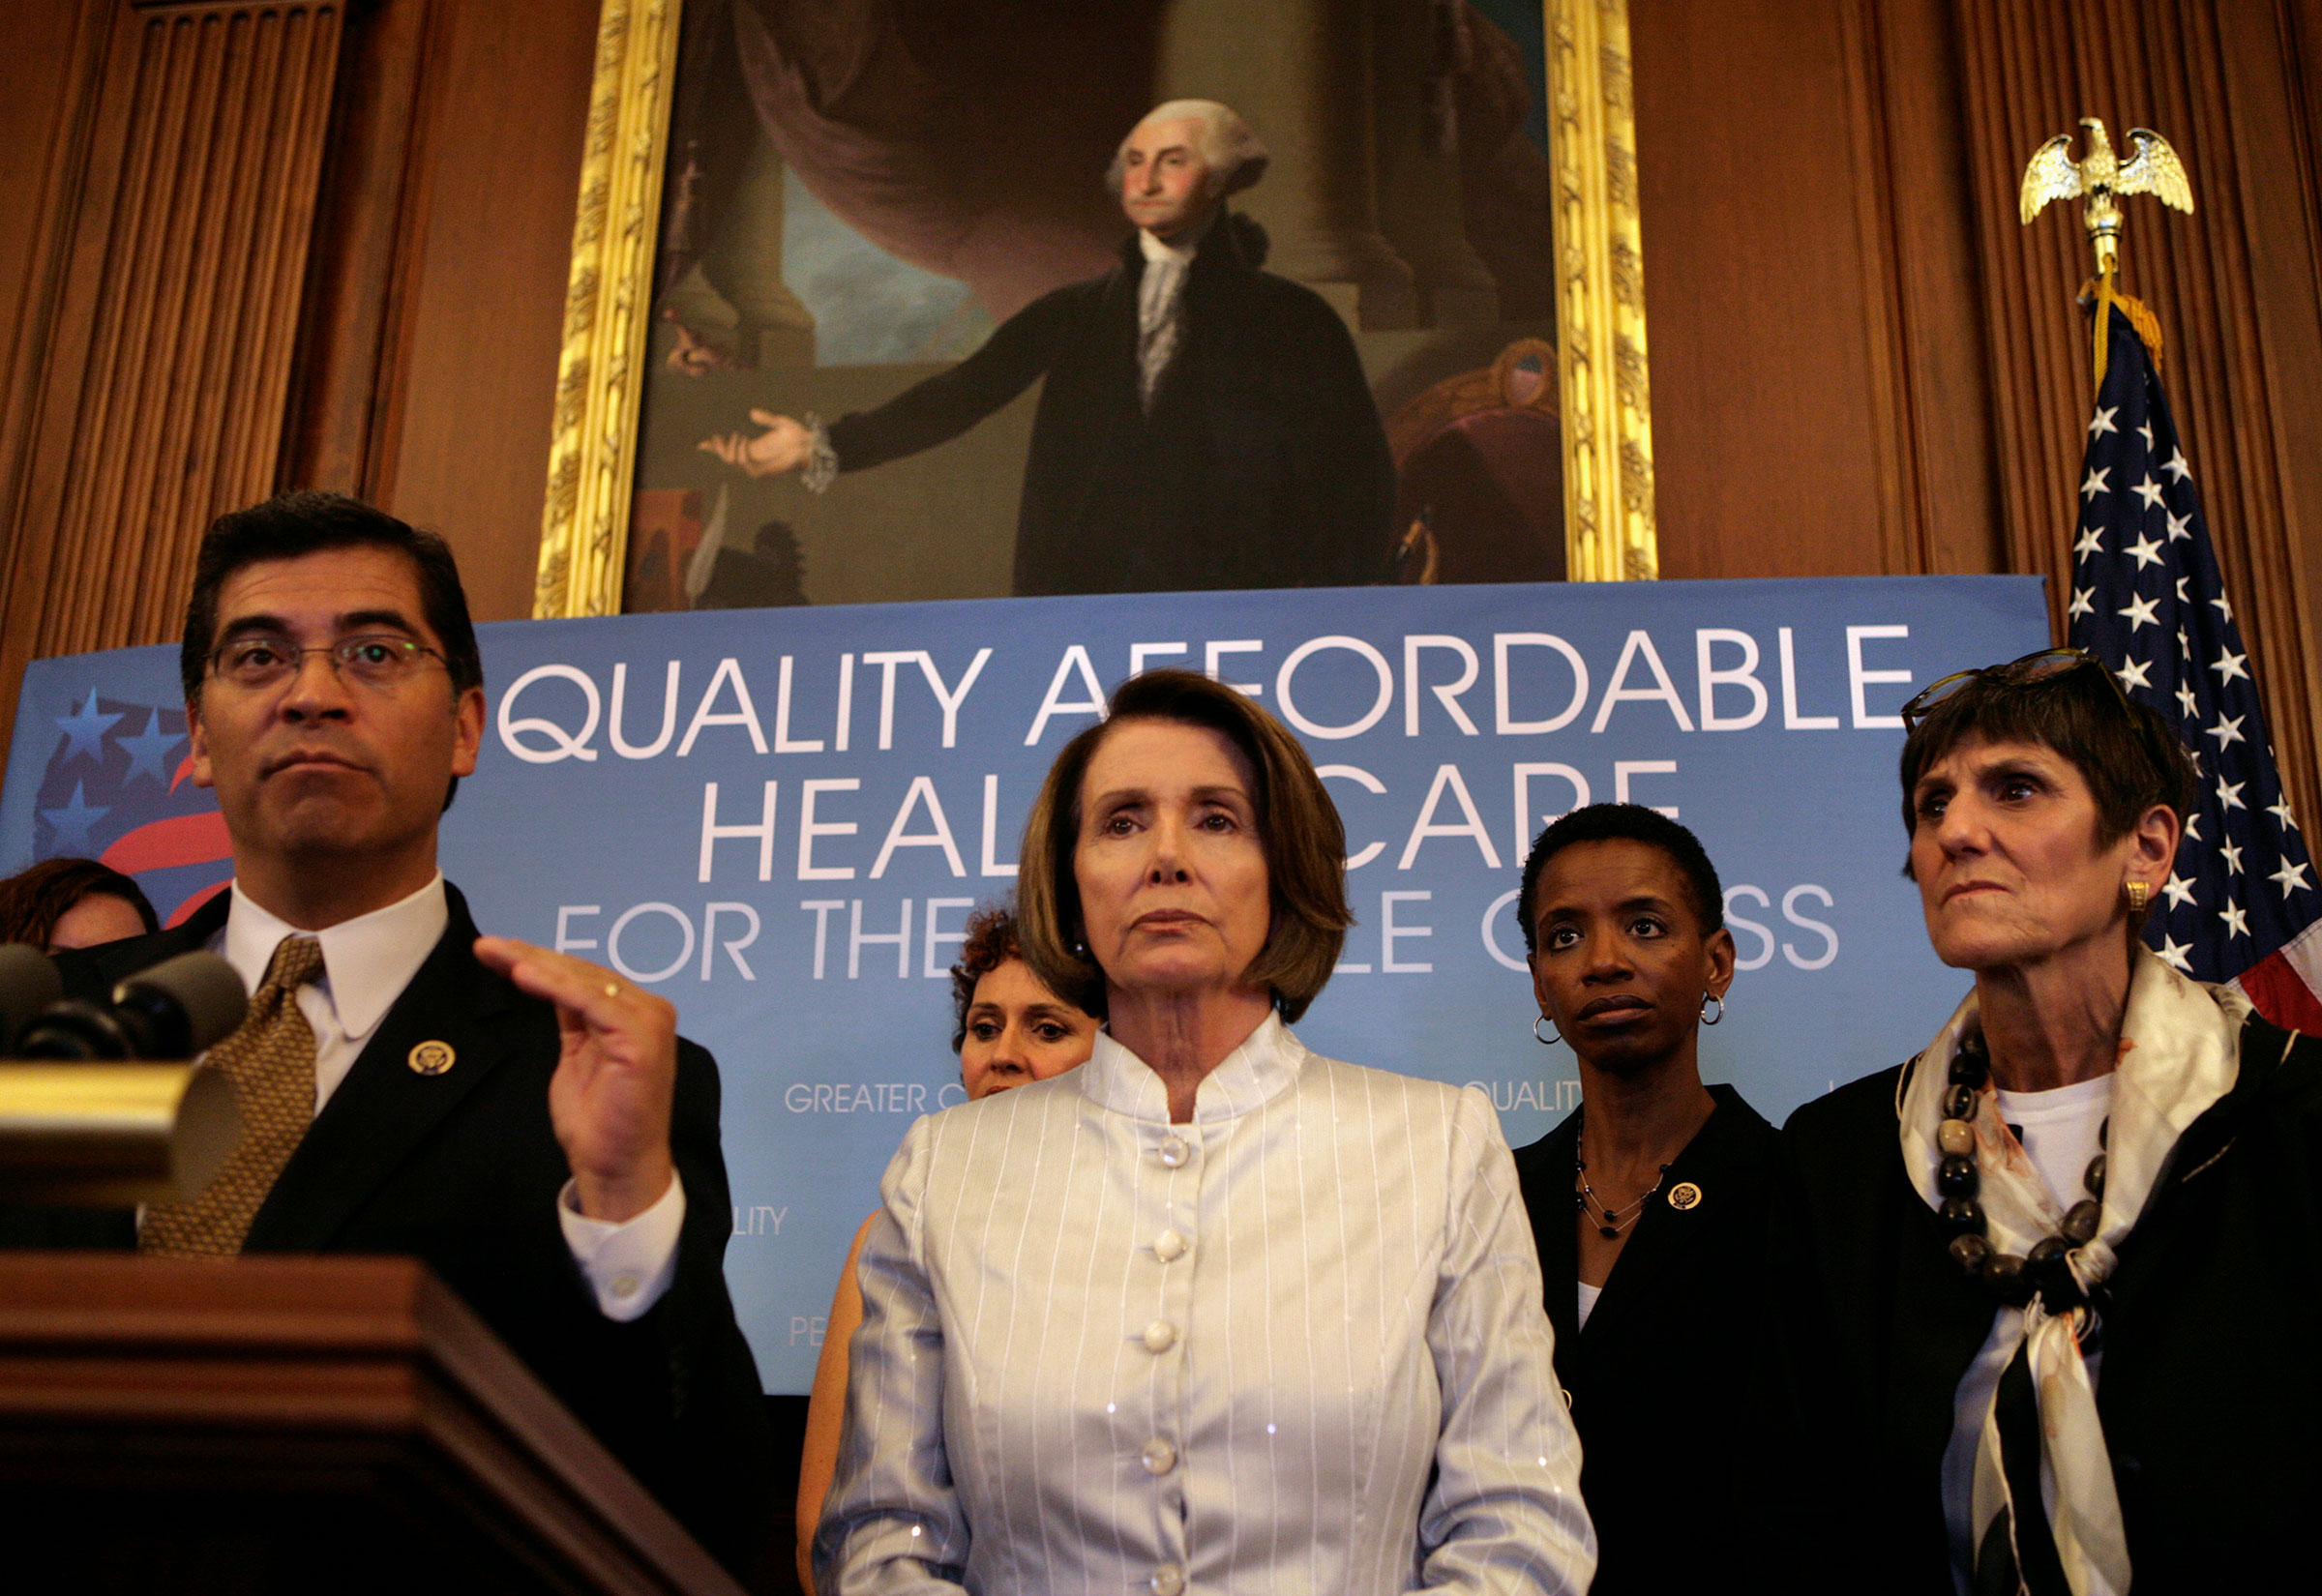 Rep. Xavier Becerra speaks next to Speaker of the House Nancy Pelosi during a news conference on America's Affordable Health Choices Act on Capitol Hill on July 22, 2009.